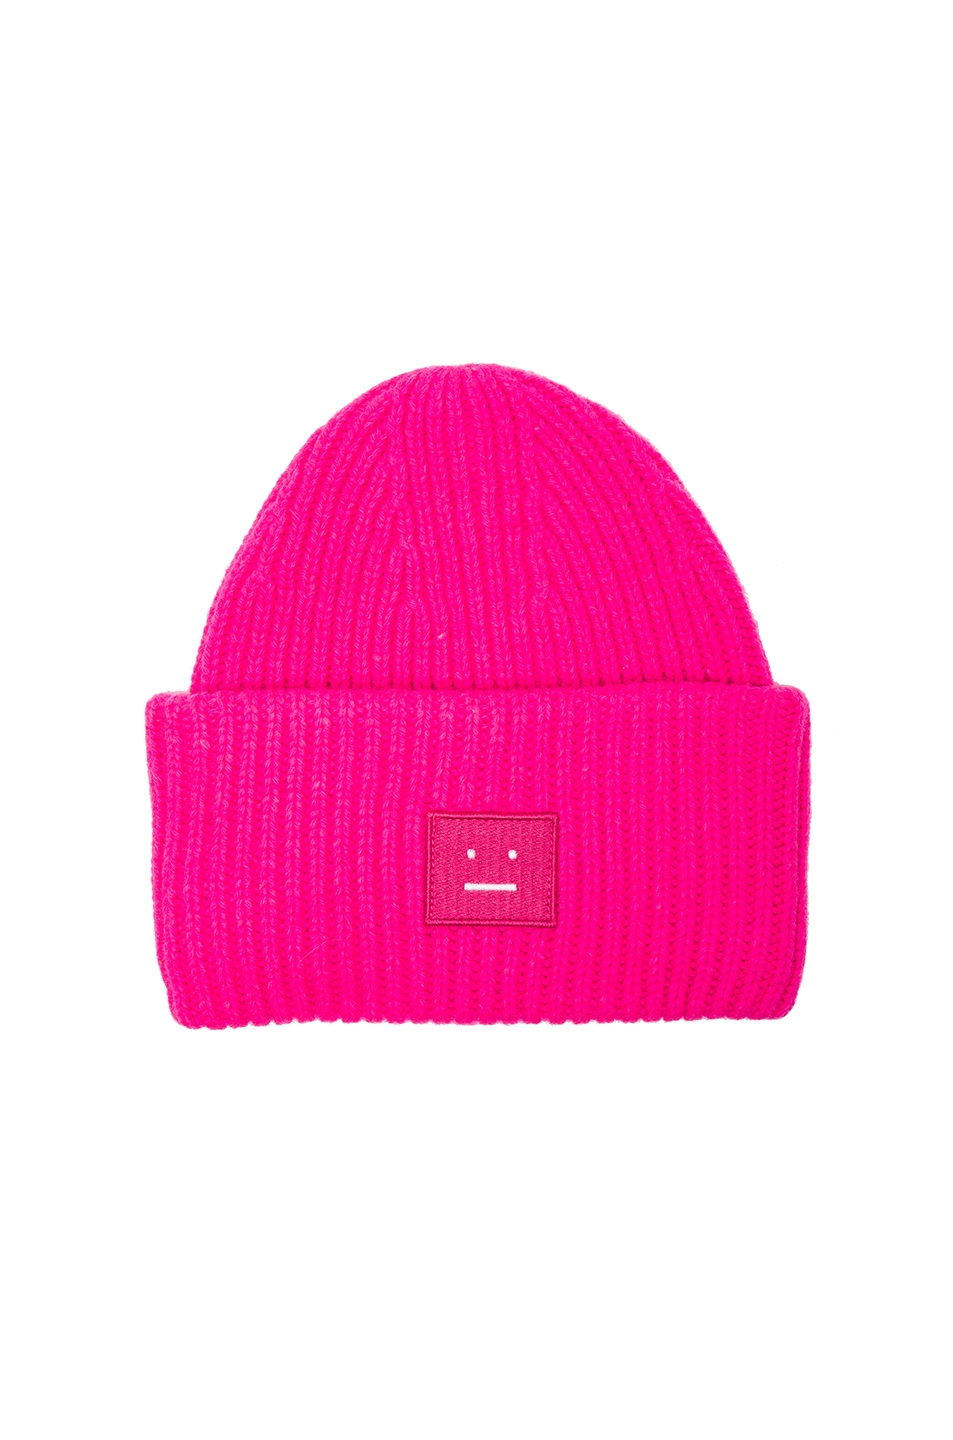 Image 1 of Acne Studios Pansy Wool Hat in Fuchsia Pink